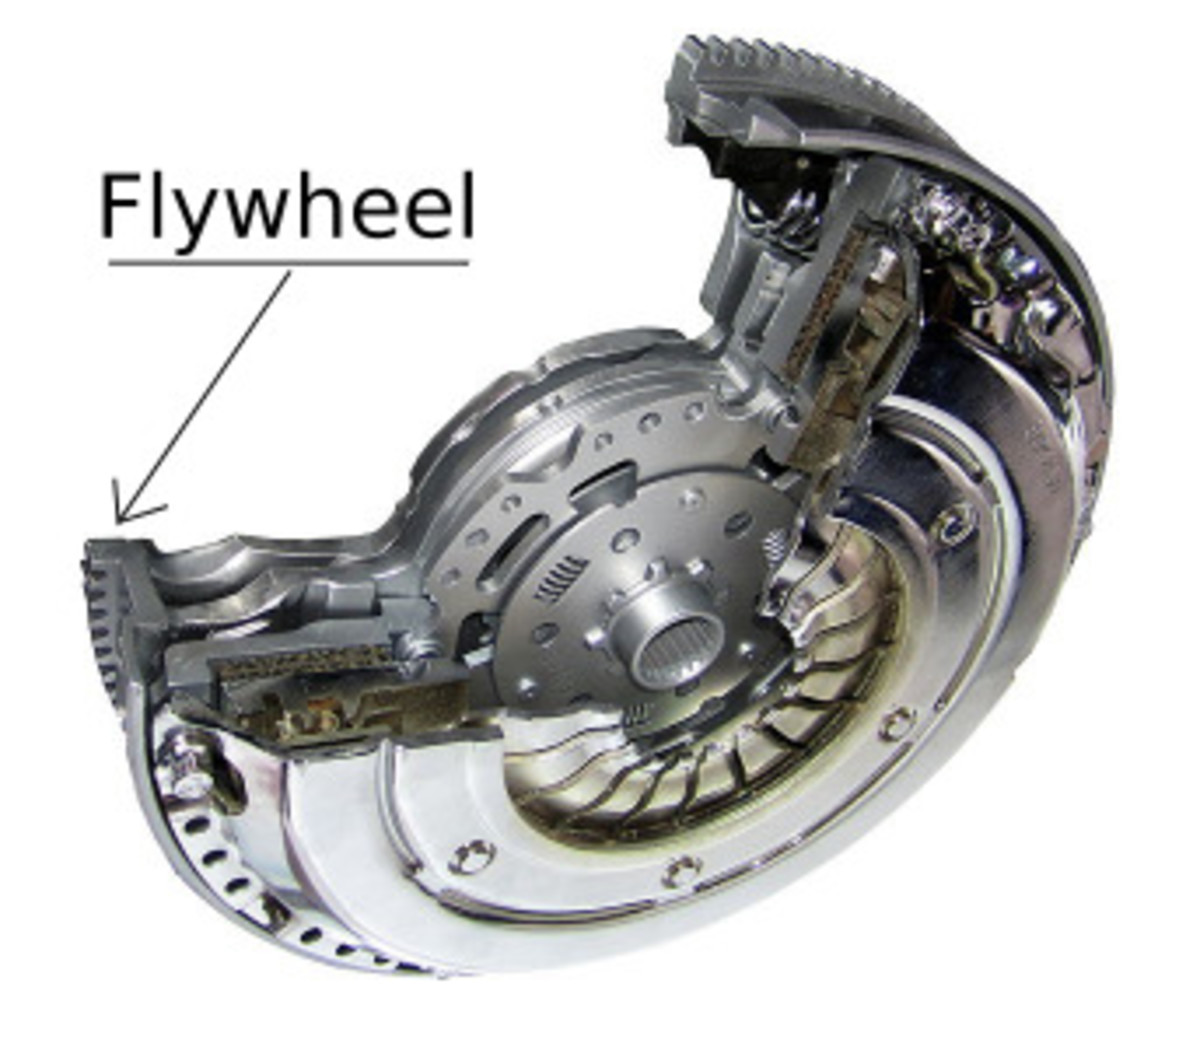 Check the flywheel for bad ring gear.